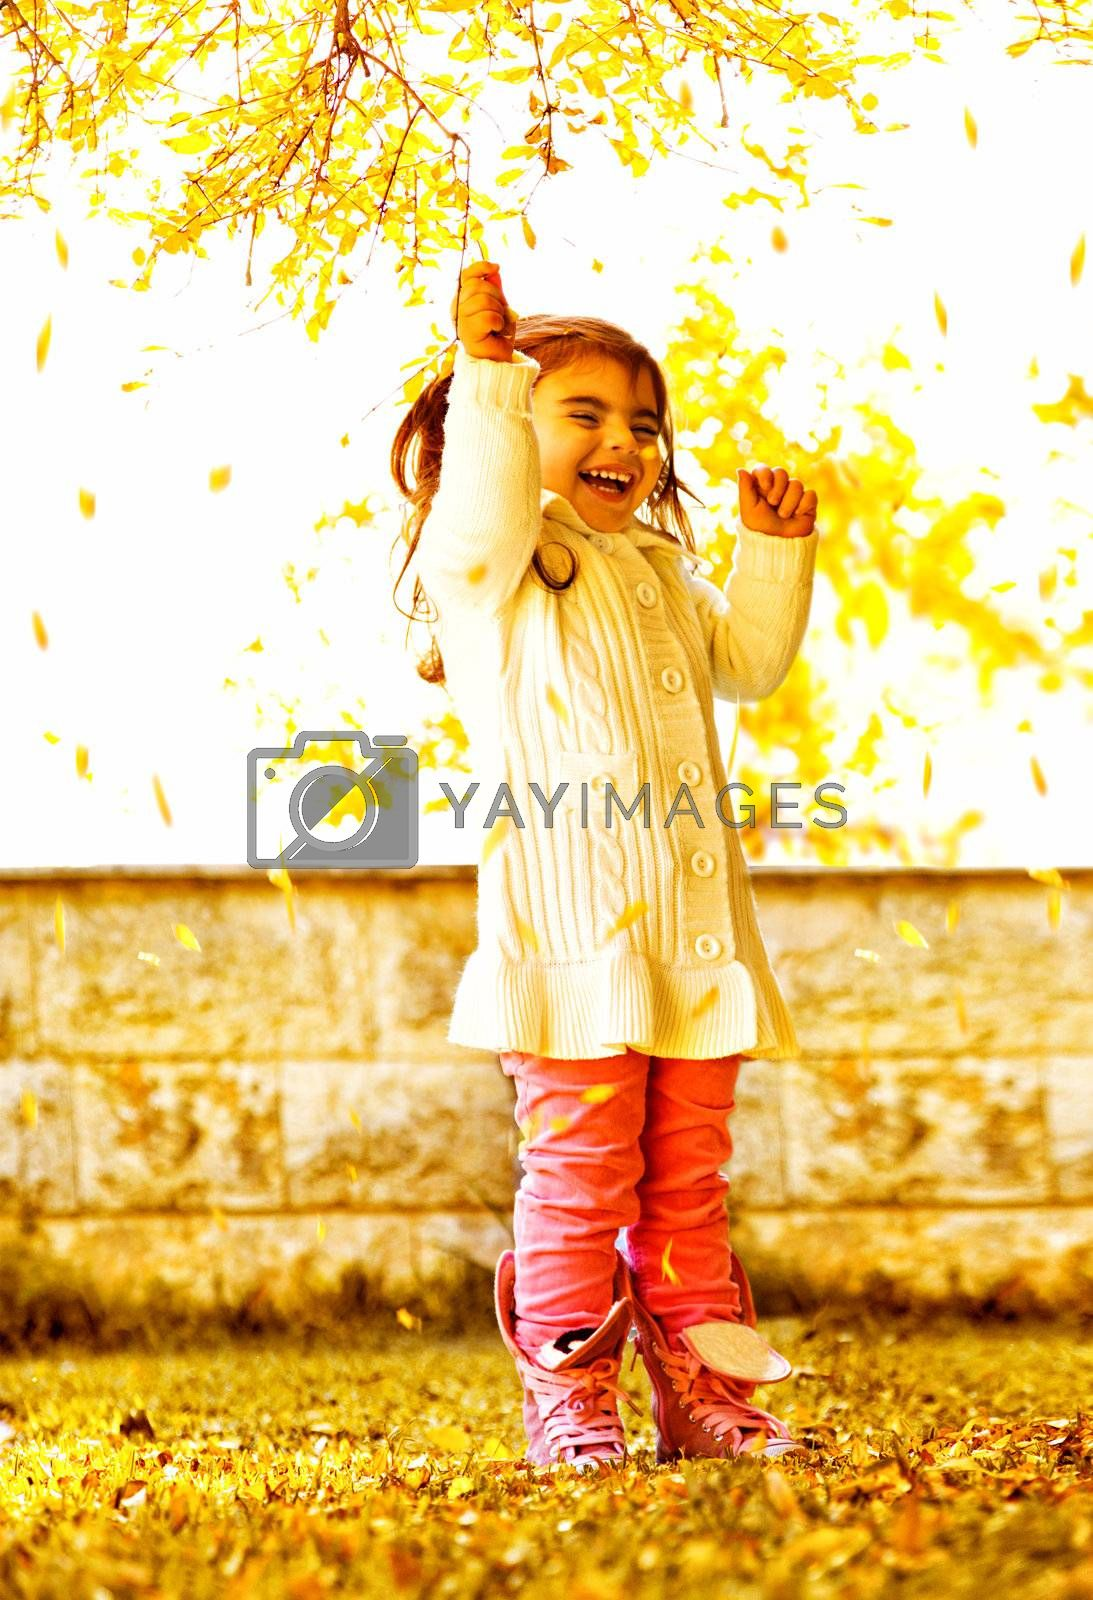 Royalty free image of Happy small girl  by Anna_Omelchenko